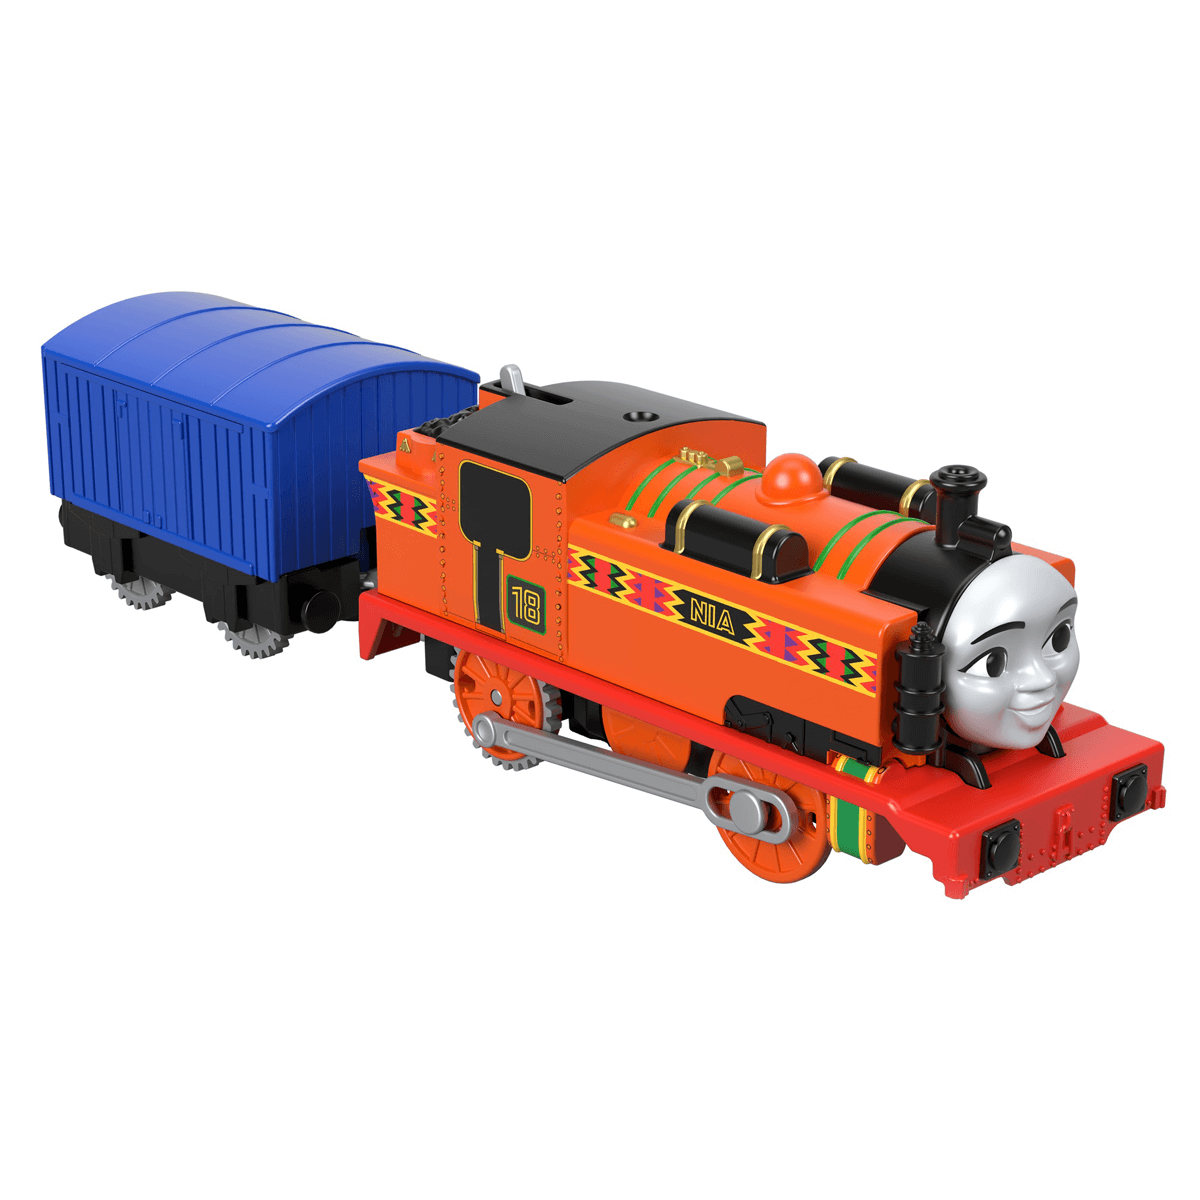 Fisher-Price Thomas & Friends TrackMaster Train Engine - Nia and Carriage